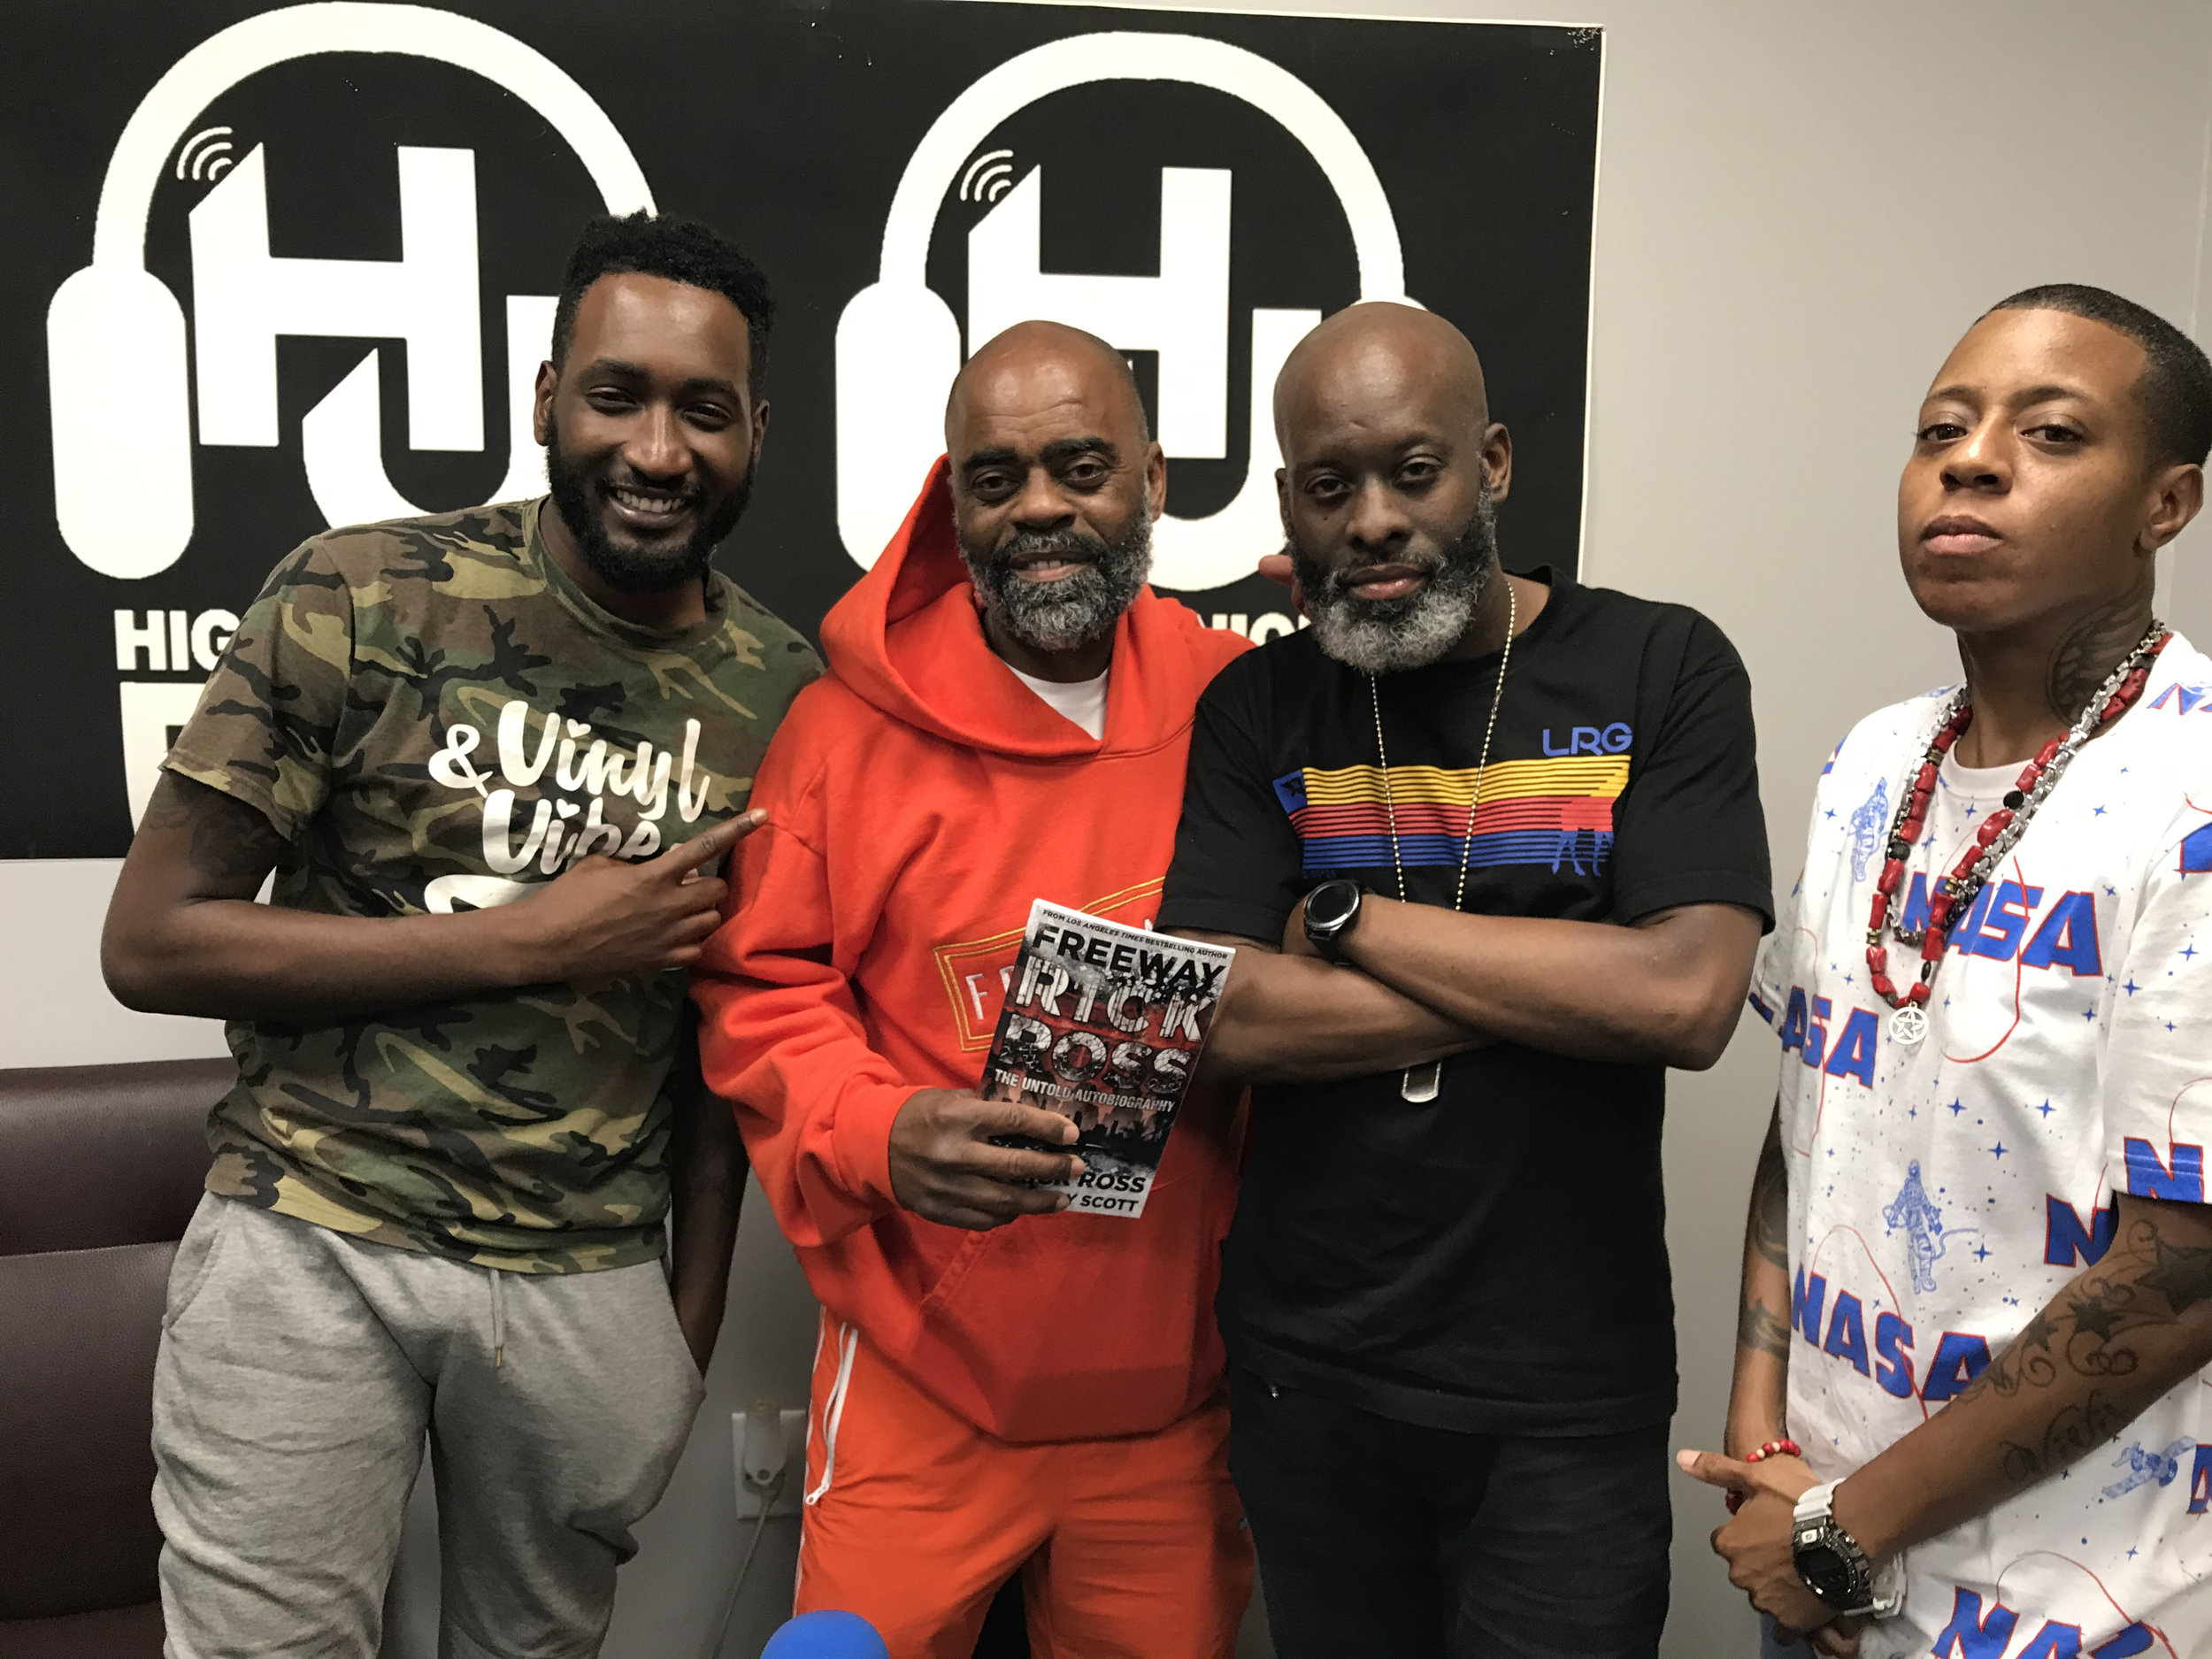 THE HOTBOX - W/ FREEWAY RICK ROSS